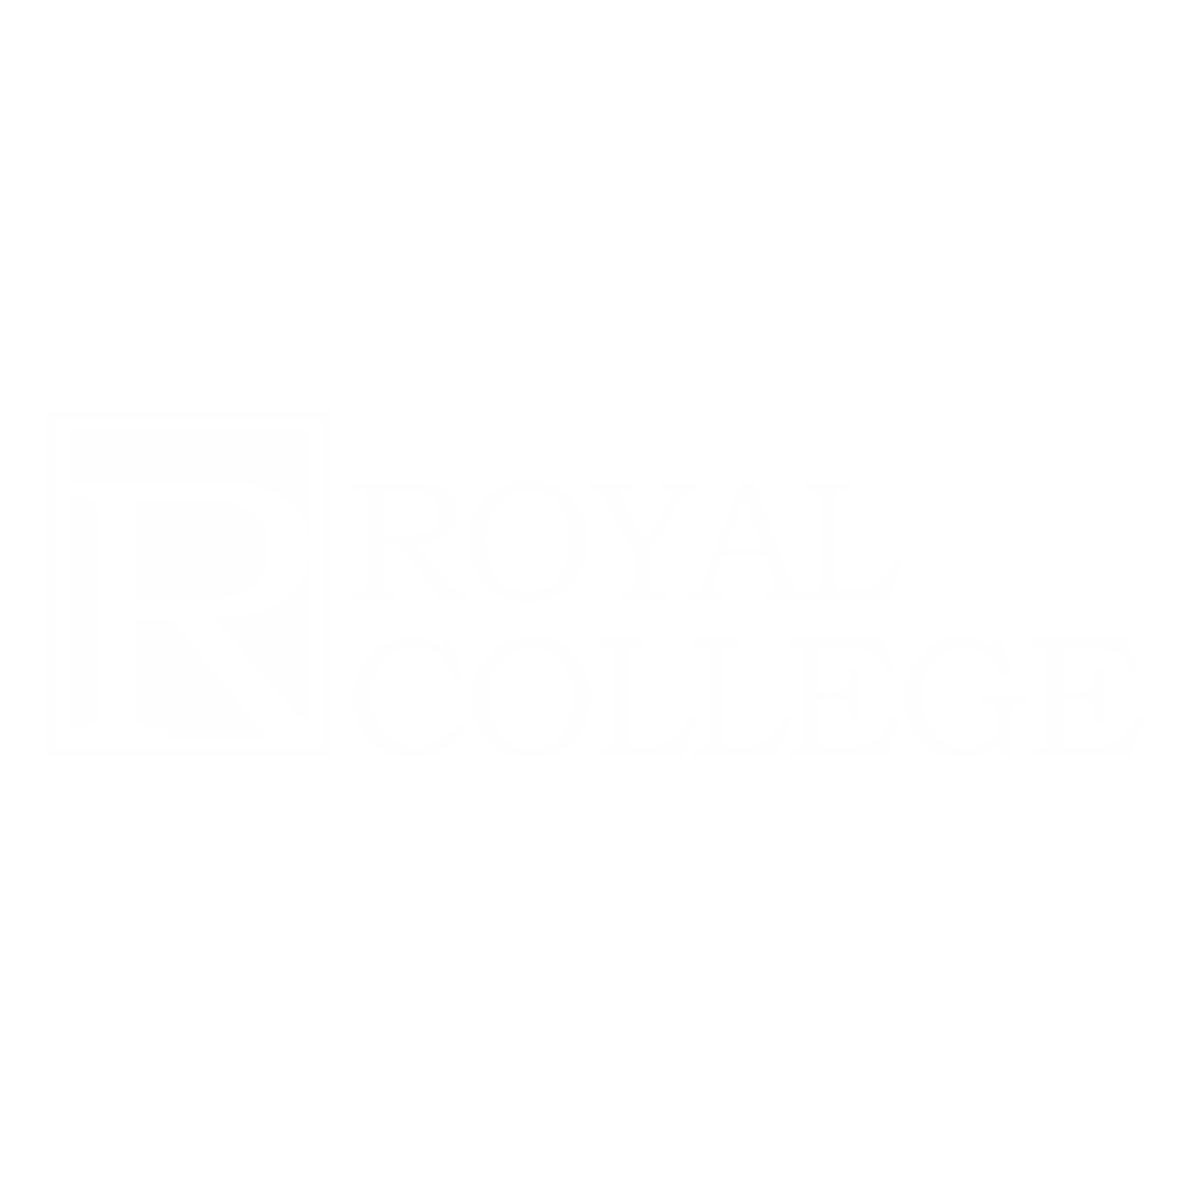 royalcollege.png